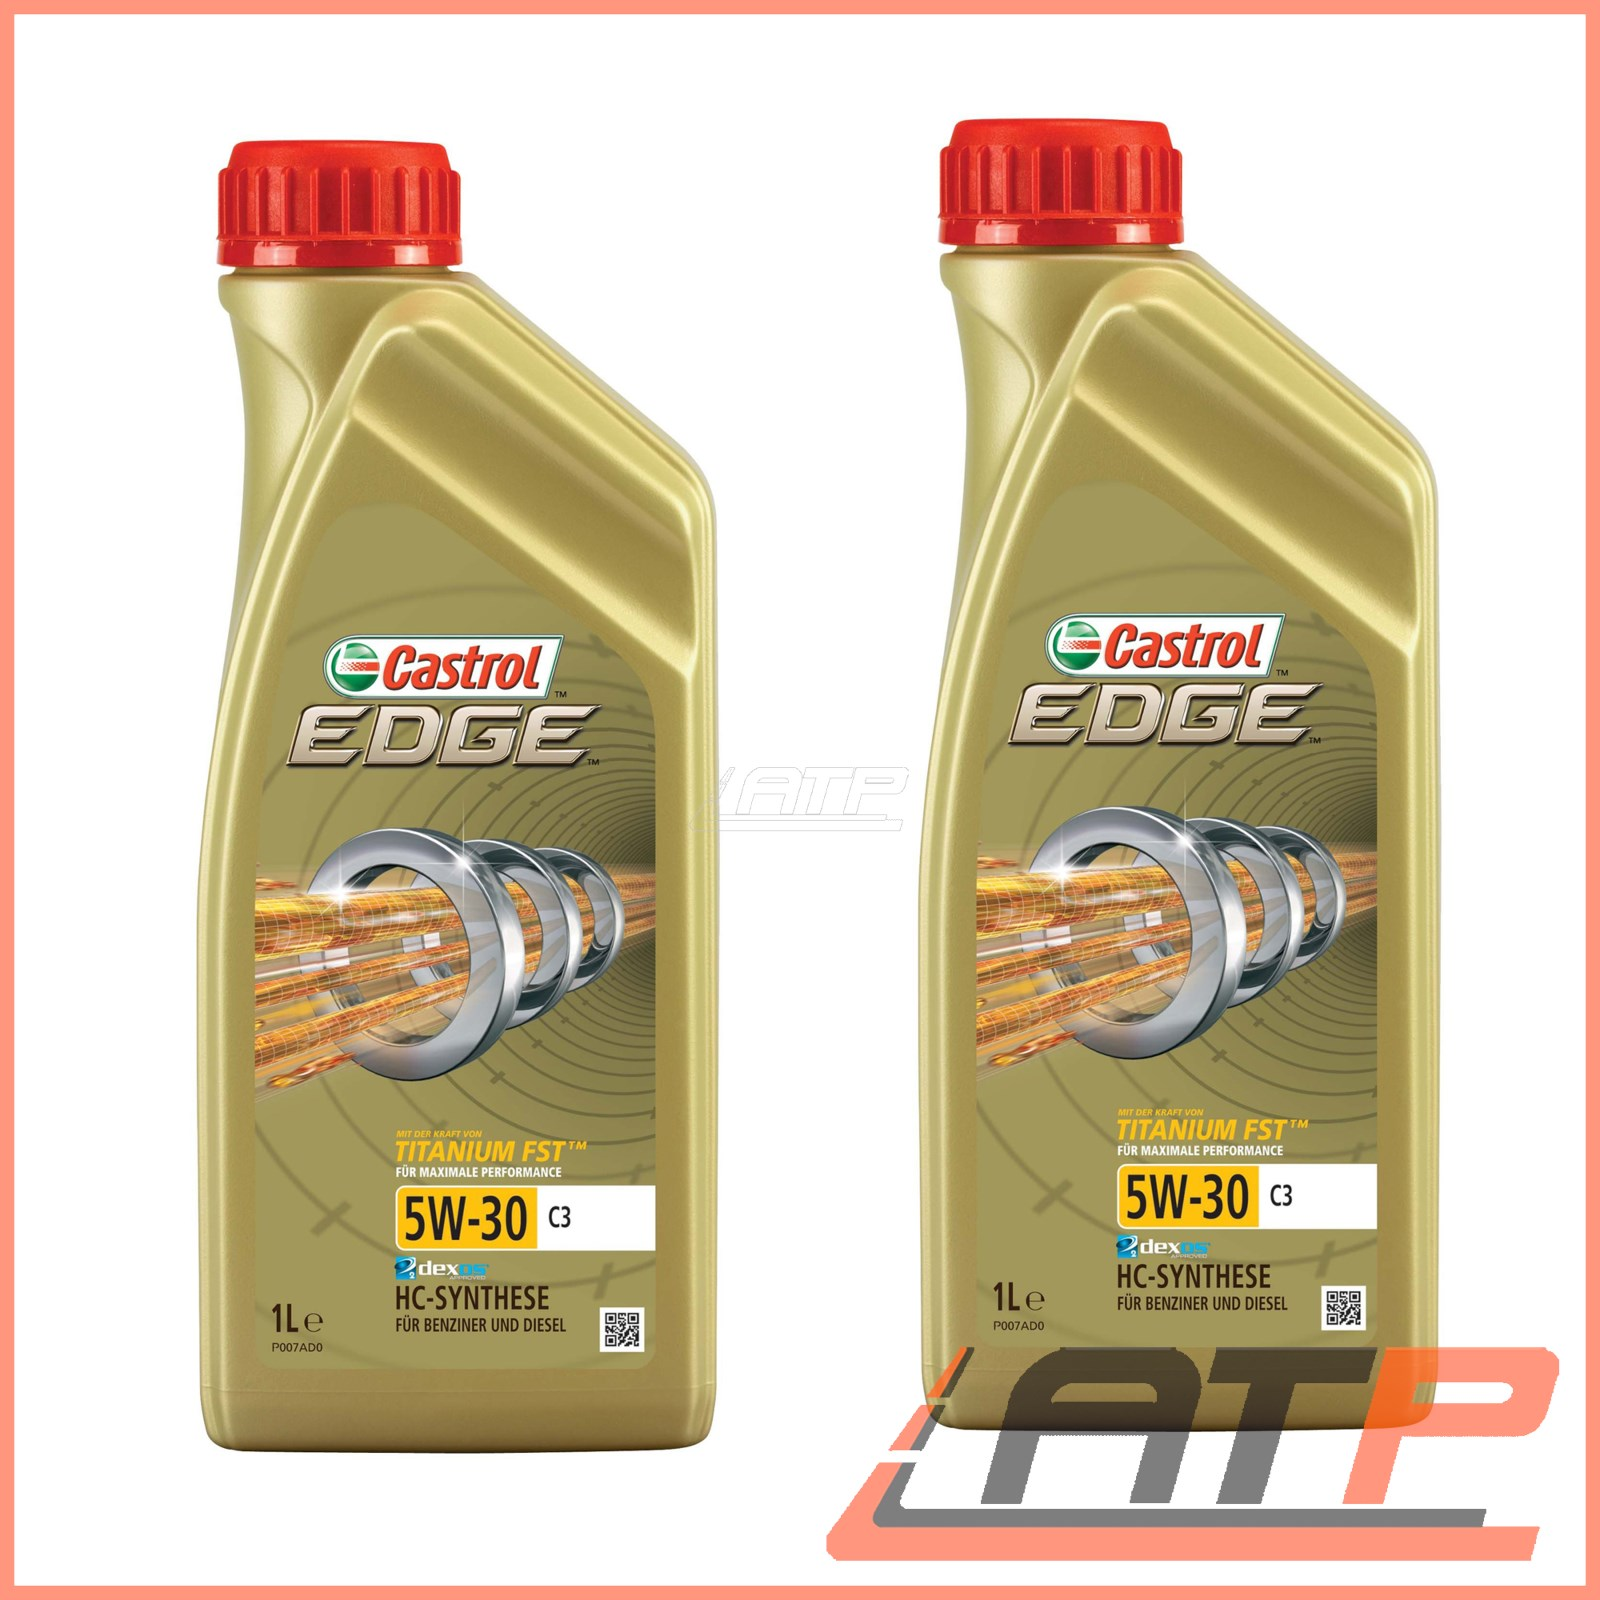 2x 1 l litre castrol edge titanium fst 5w 30 c3 engine oil bmw longlife 04 ebay. Black Bedroom Furniture Sets. Home Design Ideas